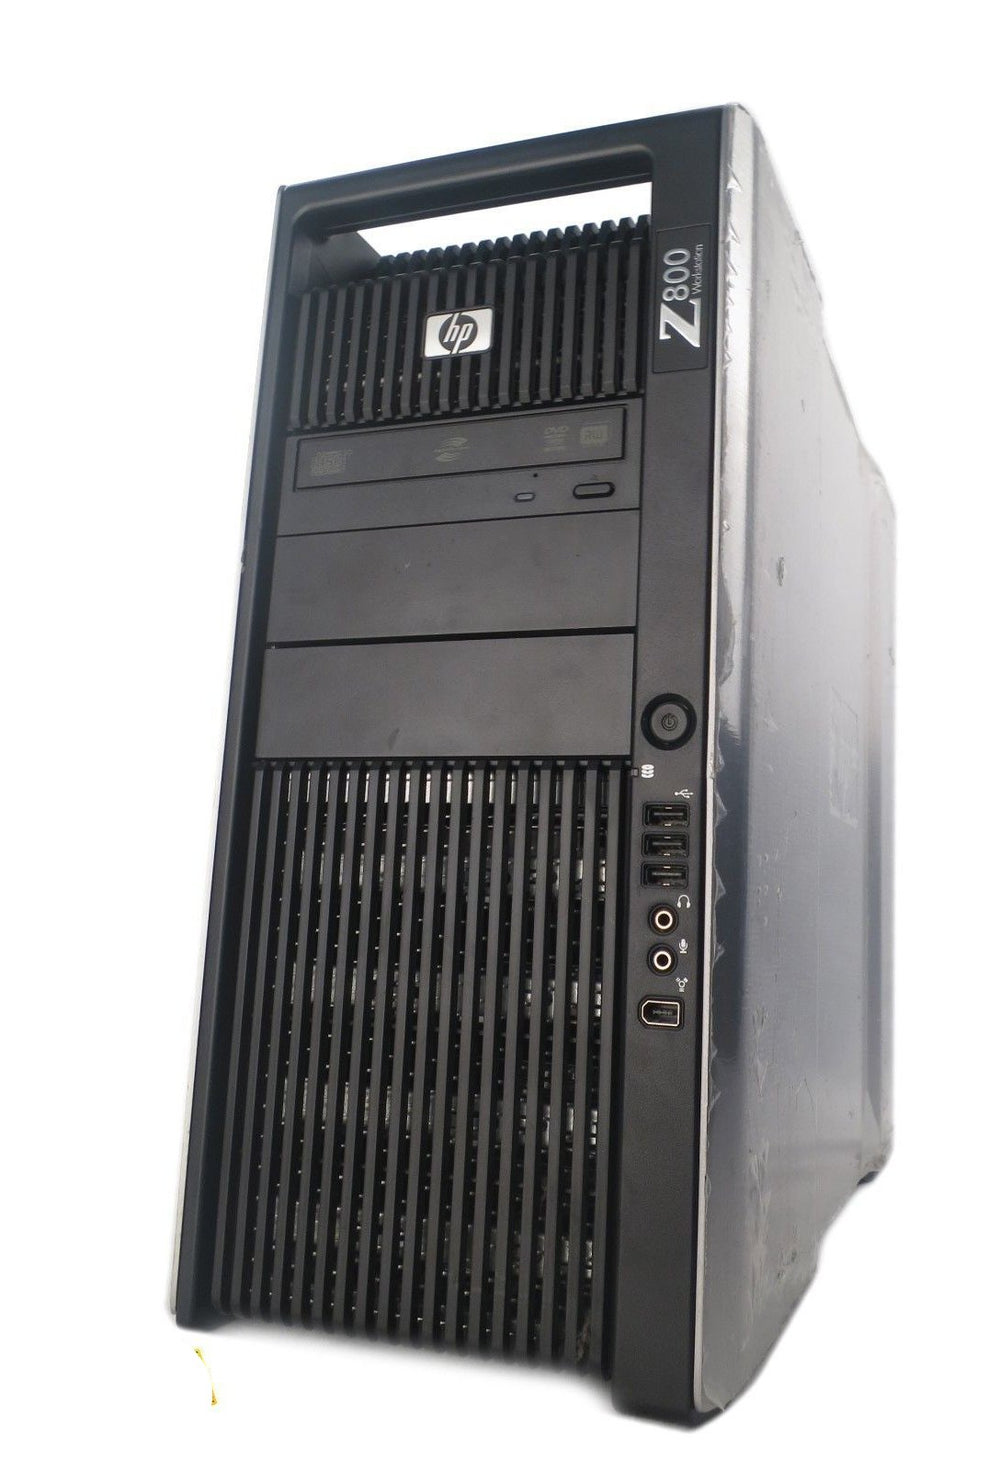 HP Z800 2x Xeon X5670 X5660 X5650 Quadro 4000 24GB 2TB - Bonanza Deals